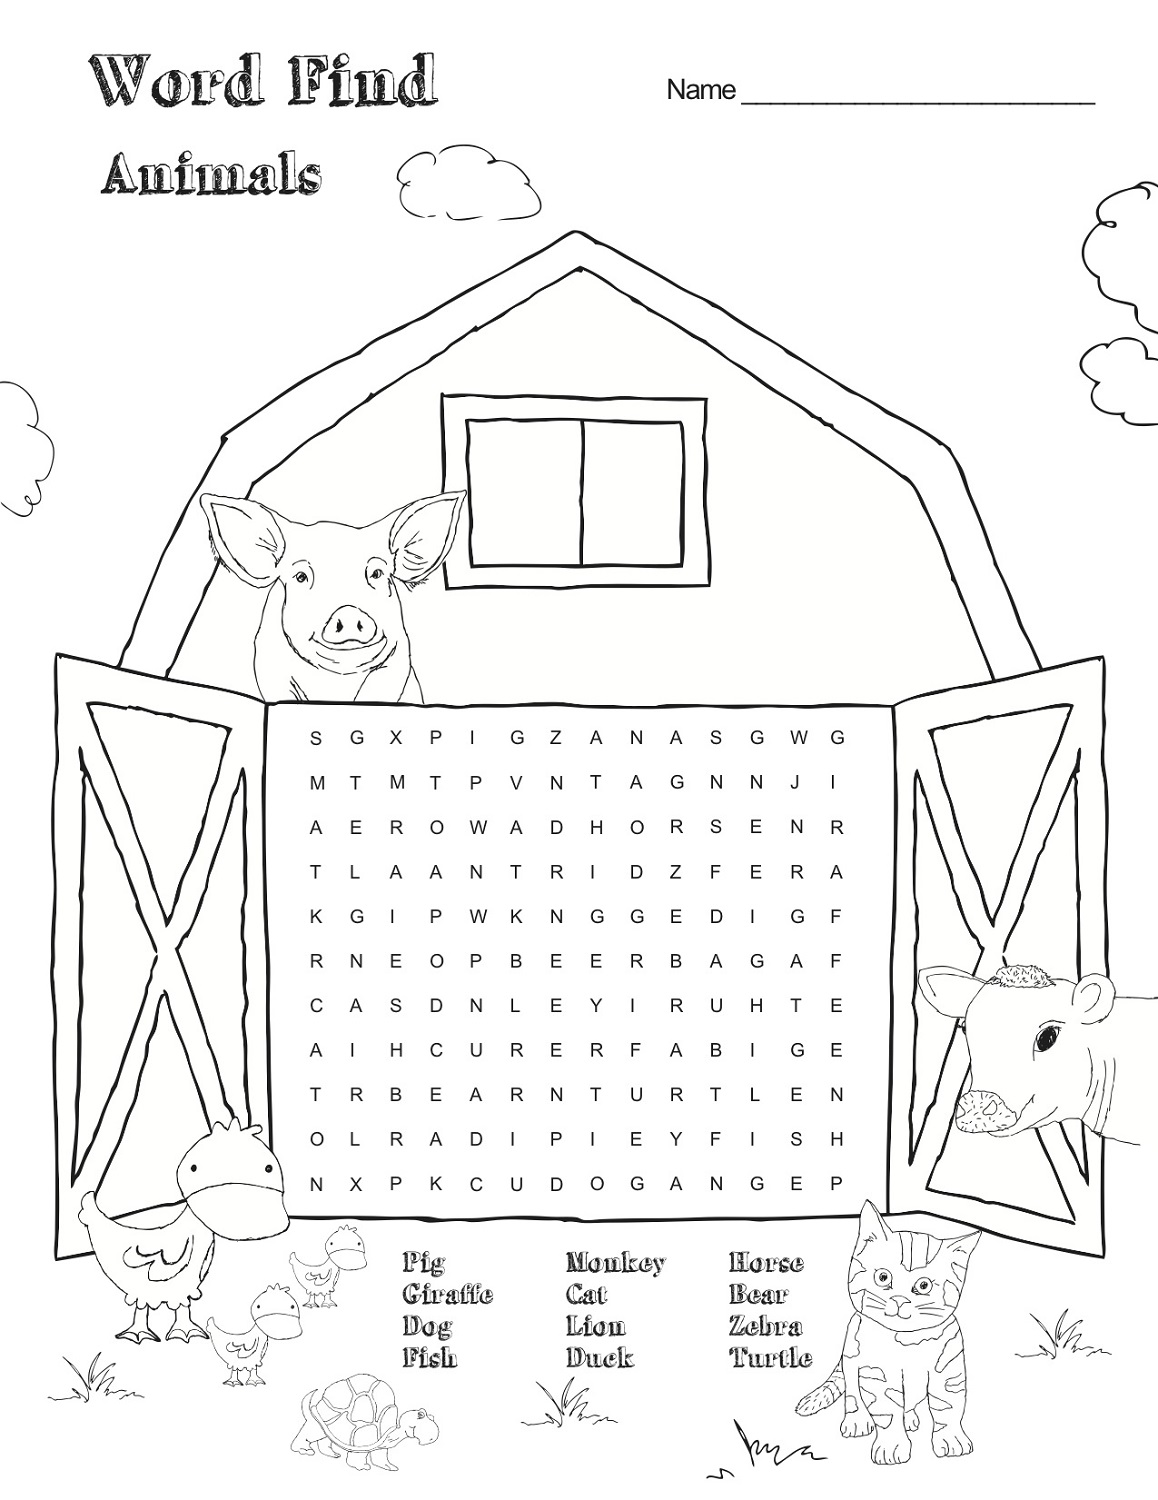 animal-farm-word-search-for-kids